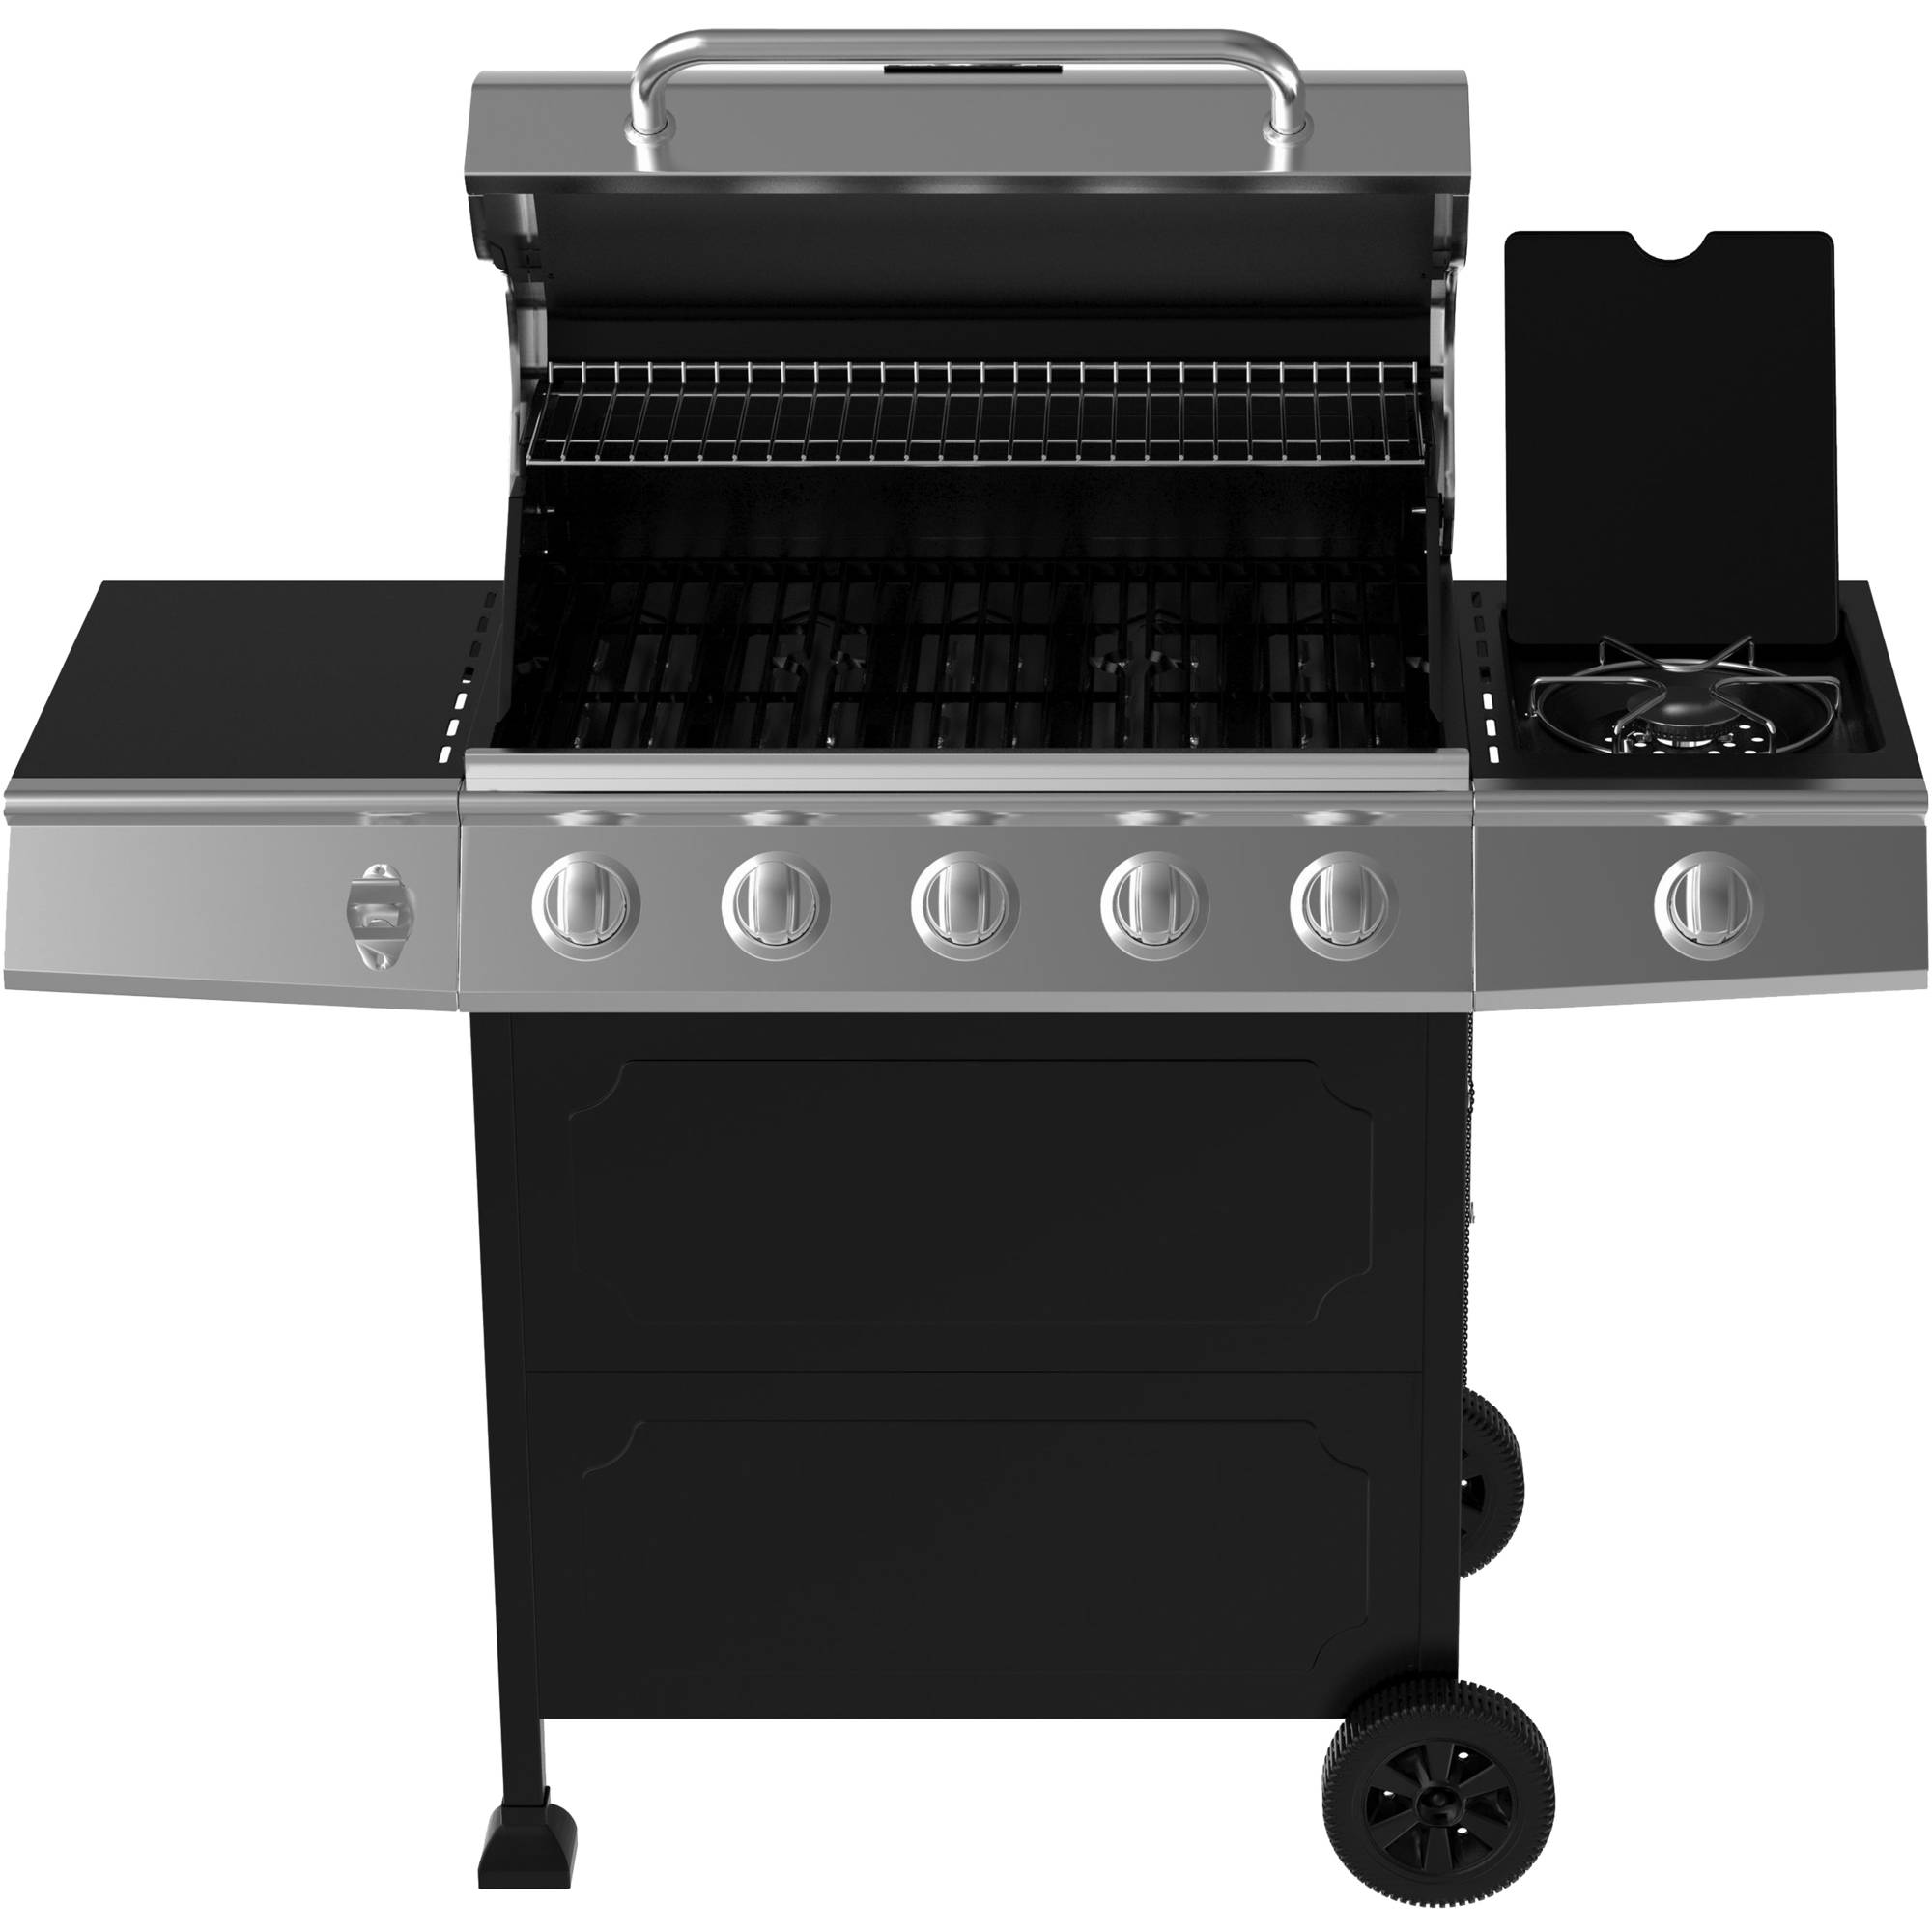 Incroyable Backyard Grill 5 Burner Gas Grill, Black   Walmart.com